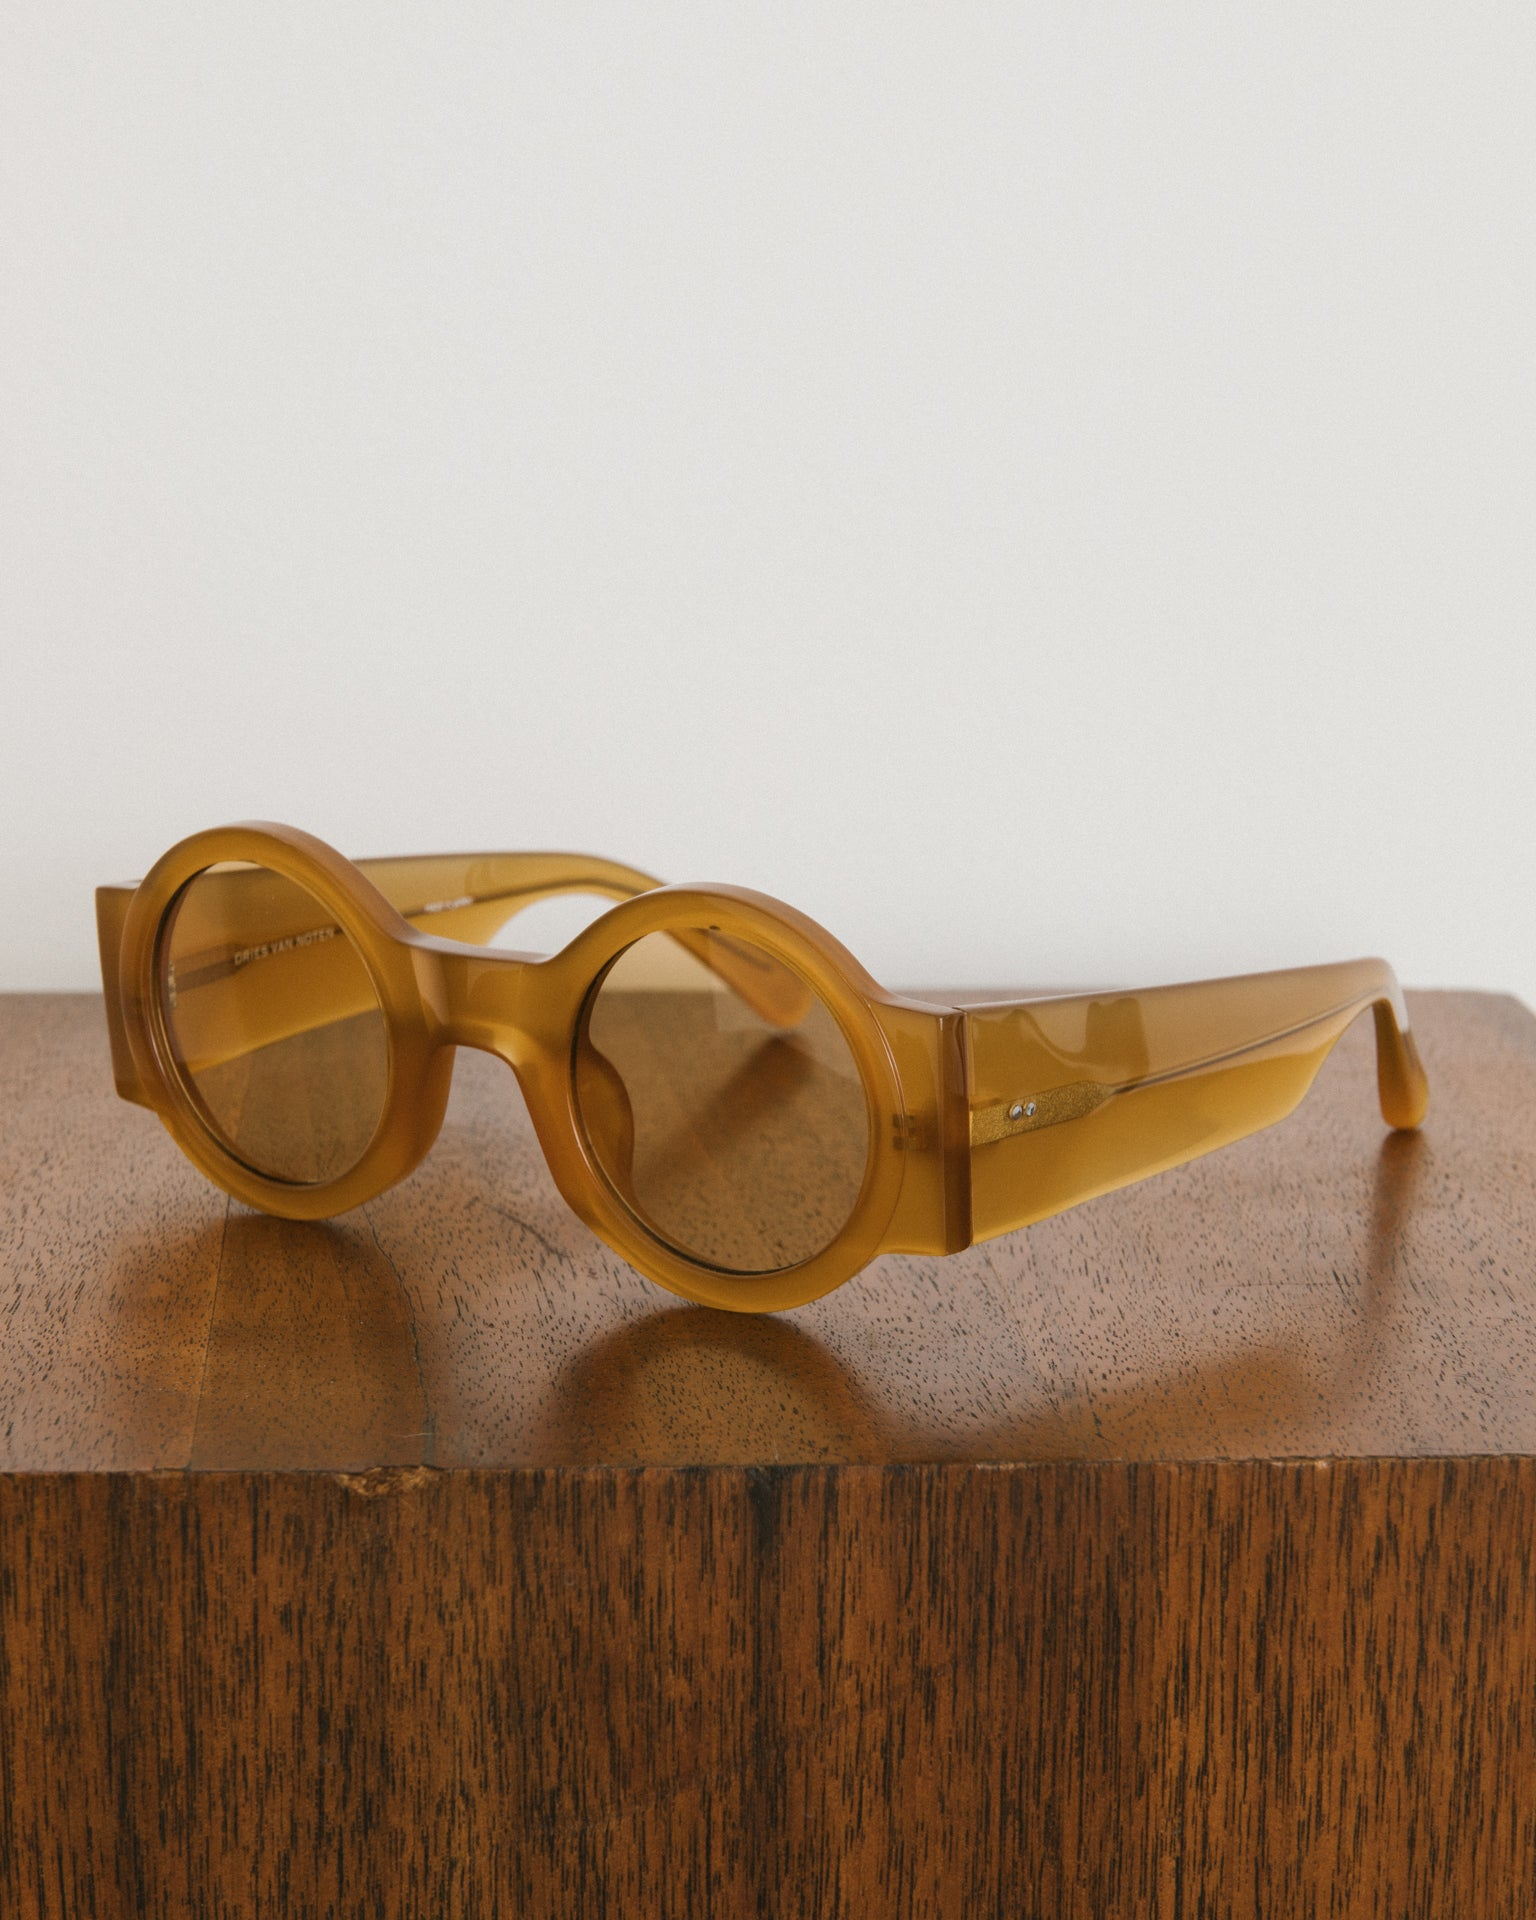 Sunglasses in Amber and Light Gold